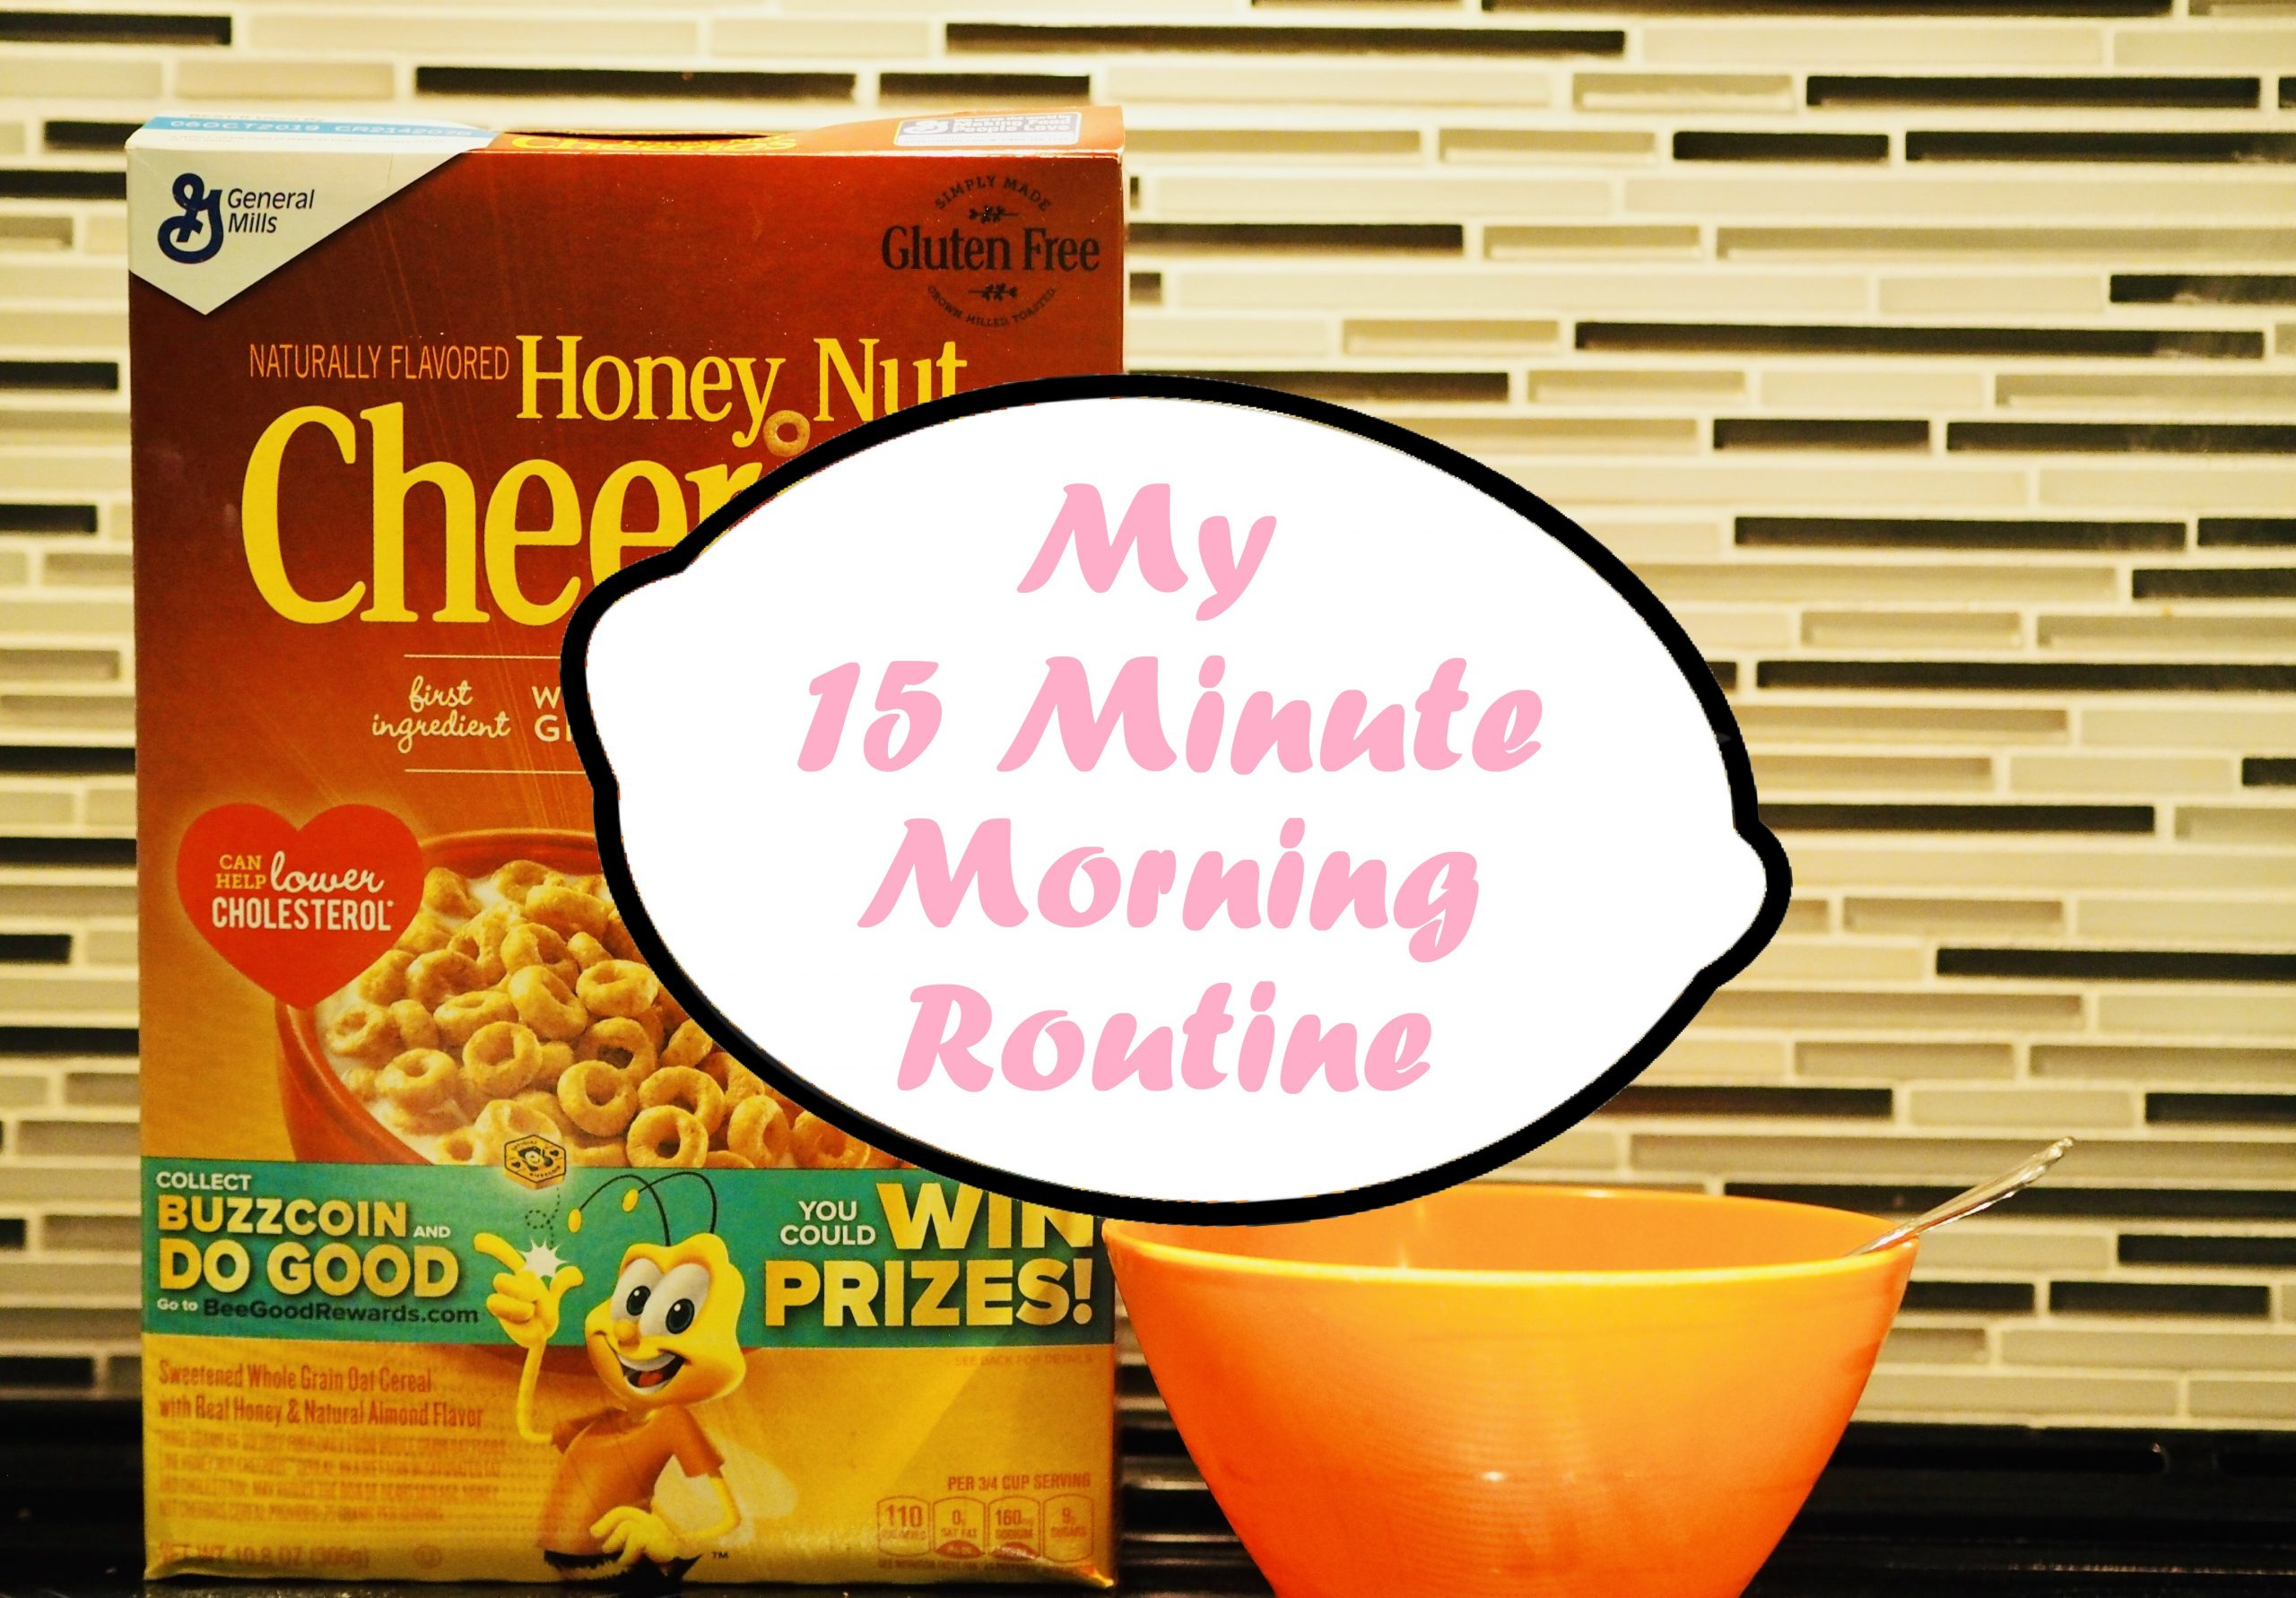 My 15 Minute Morning Routine